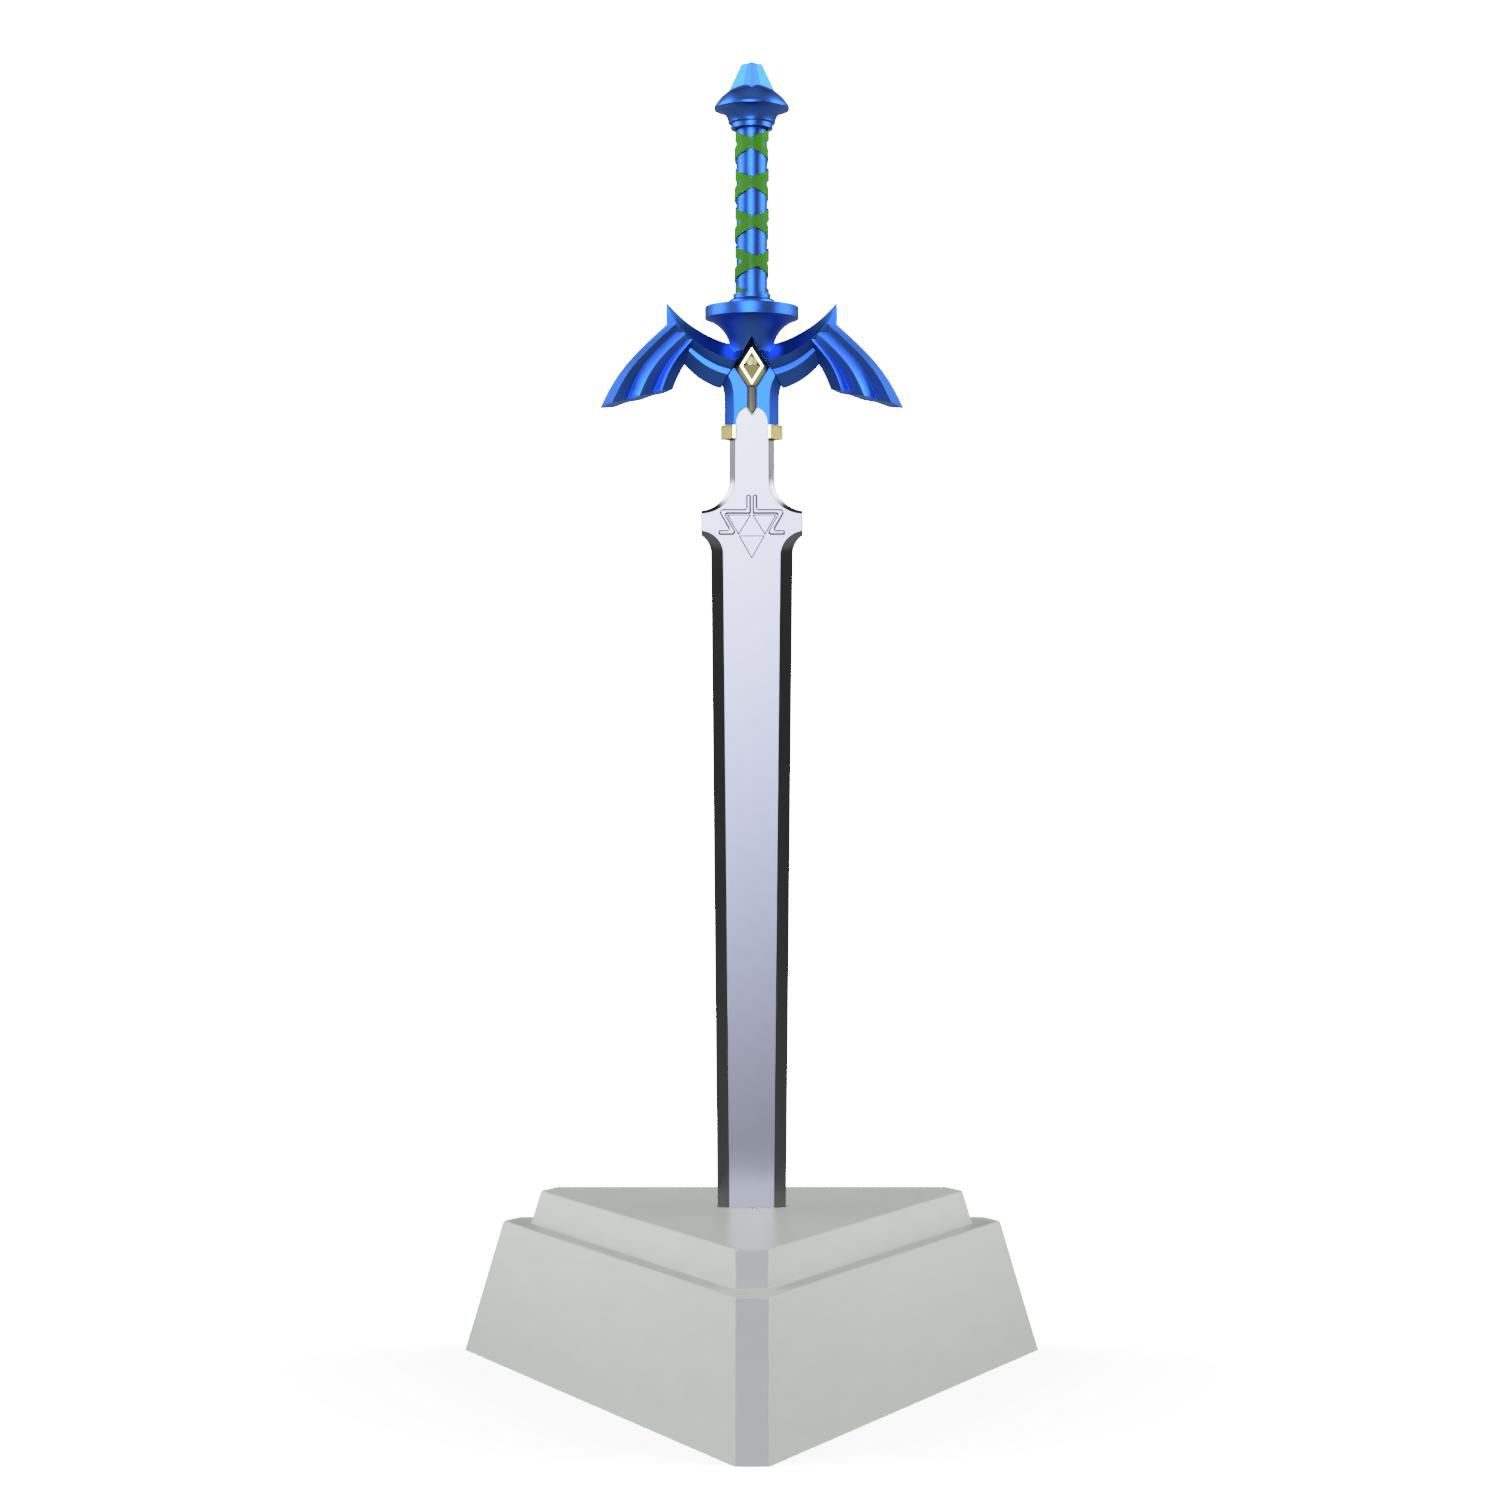 MasterSword_BOTW_2021-May-15_09-34-19PM-000_CustomizedView13137357010.jpg Download file Master sword The Legend of Zelda • 3D printer object, Shigeryu